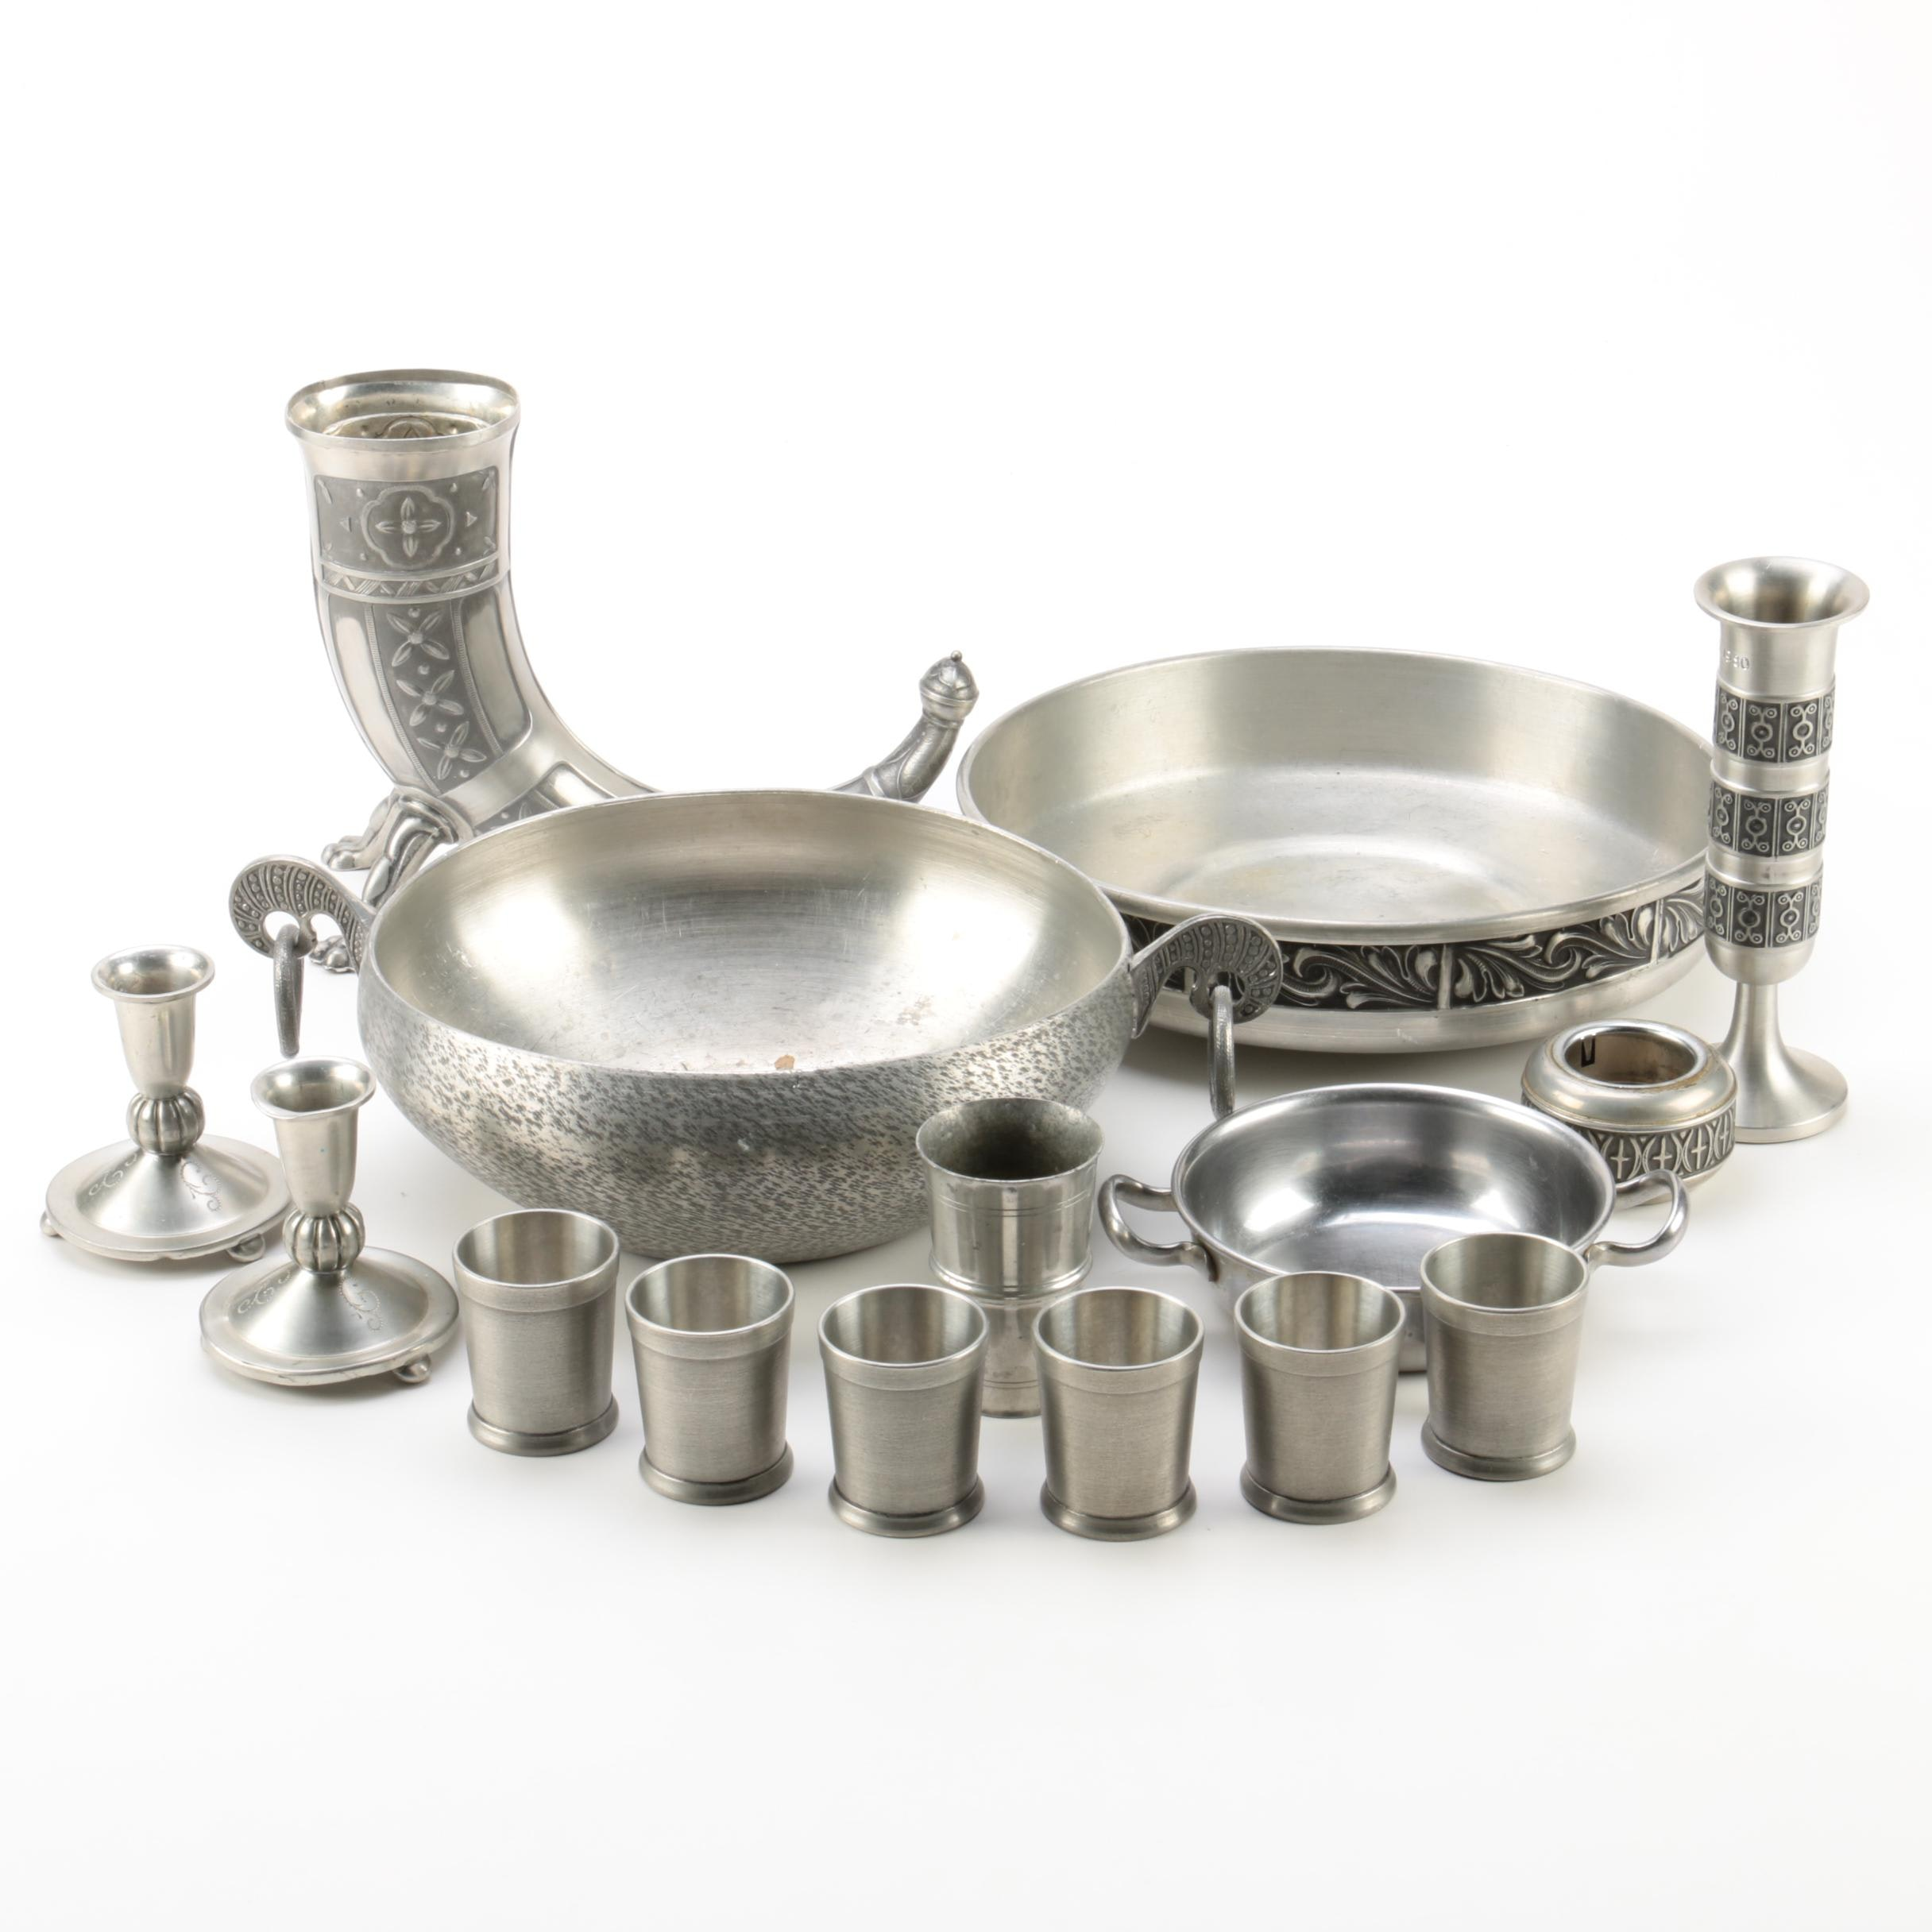 Drinking Horn and Other Scandinavian Pewter Tableware